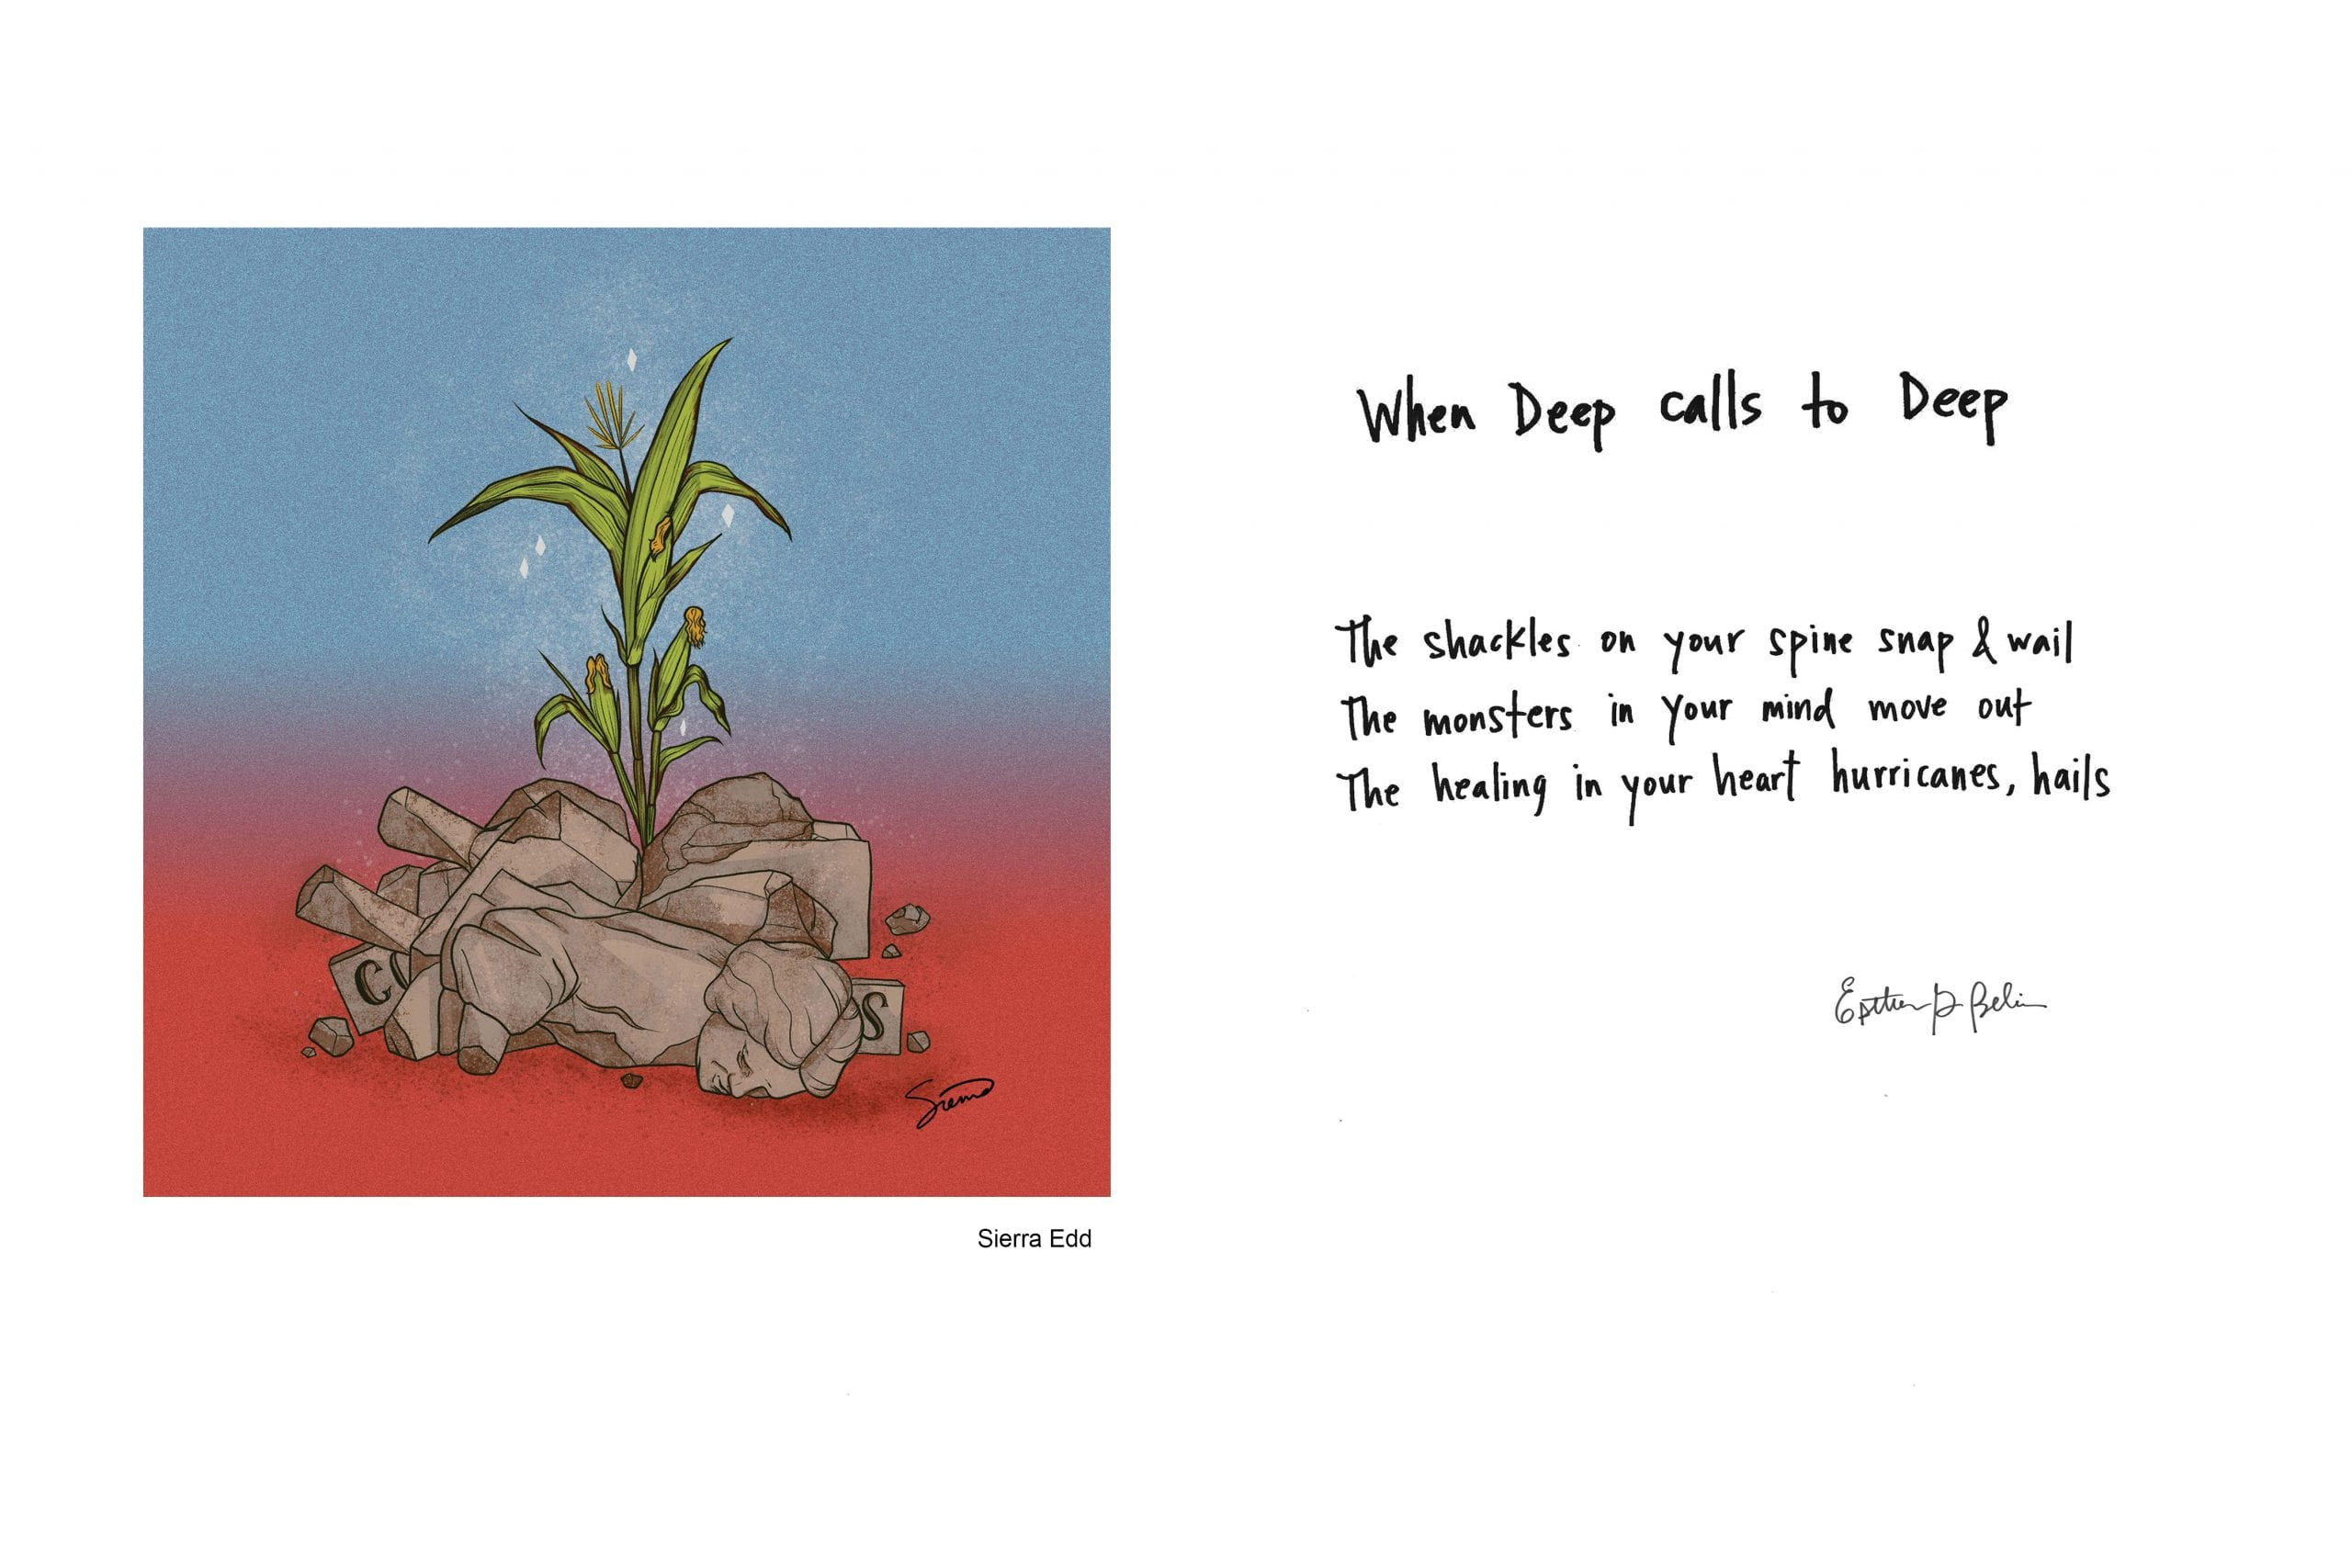 To the left is a color drawing of a stalk of corn growing from a pile of rocks; to the right is a handwritten poem